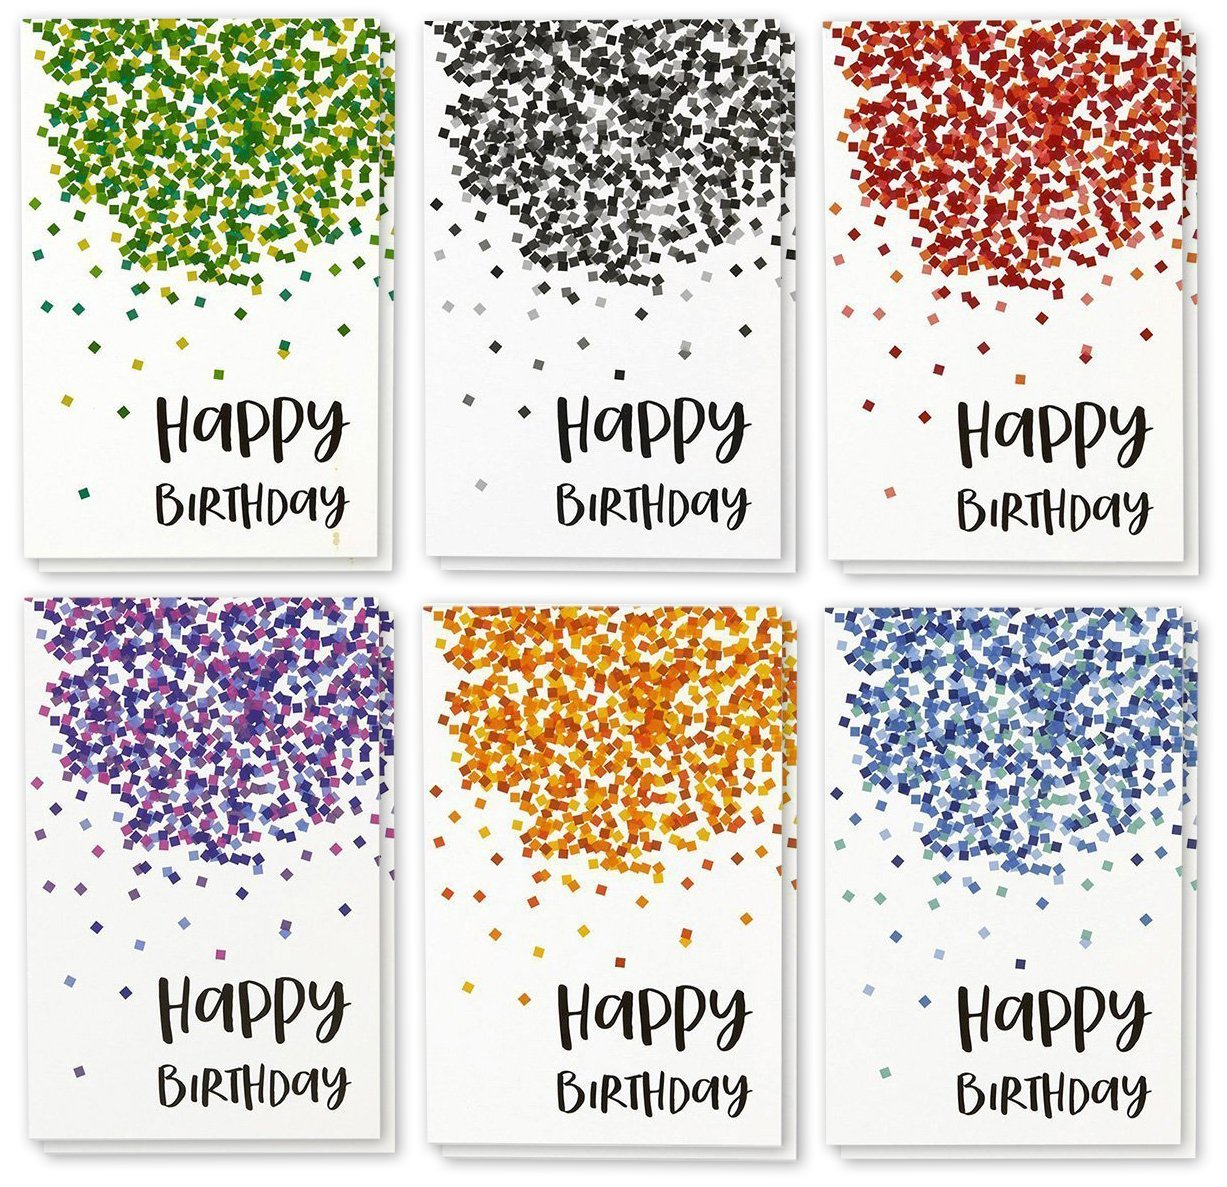 Happy Birthday Greeting Cards Bulk Box Set - 6 Falling Confetti Designs - Red, Blue, Green, Orange, Purple, Black - Blank Inside - Includes 48 Cards with Envelopes - 4 x 6 Inches Juvale